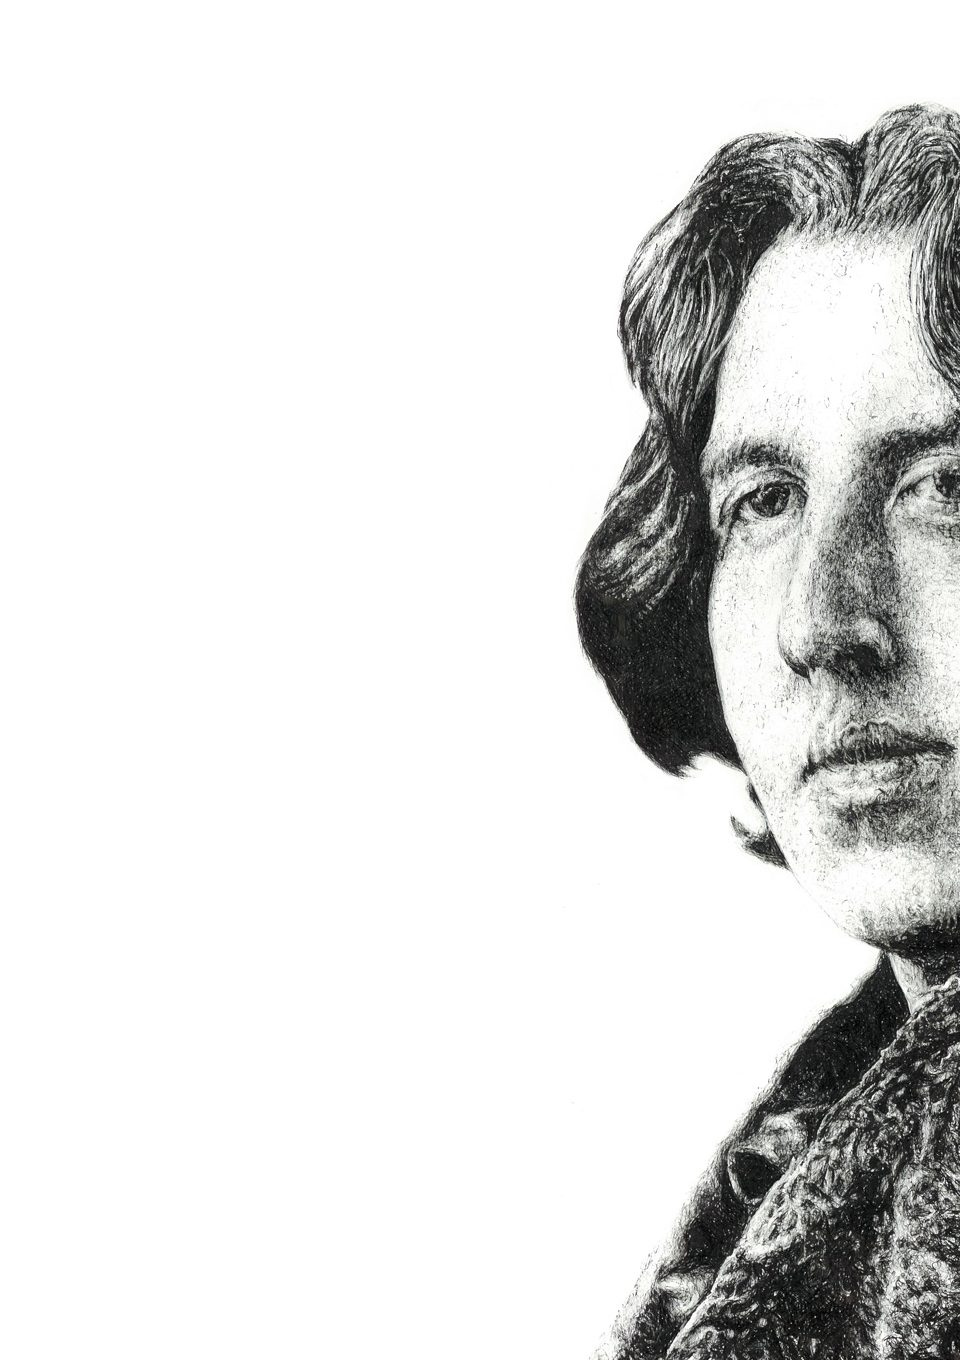 Signed illustration portrait print of Irish writer Oscar Wilde by Dublin based illustrator John Rooney in pen, ink and pencil